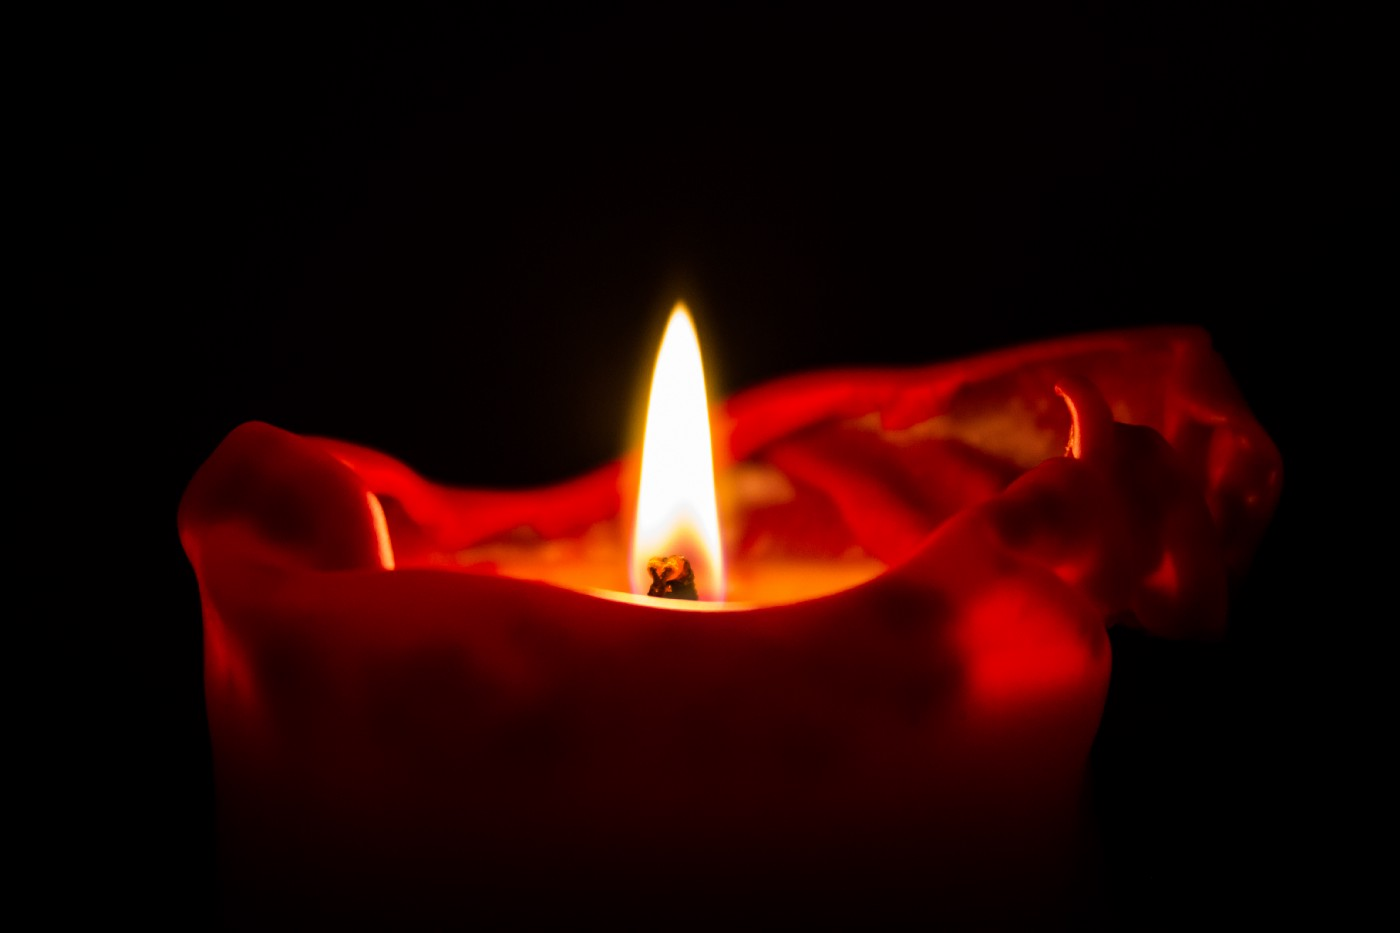 the image is taht of a single red lit candle on a black background